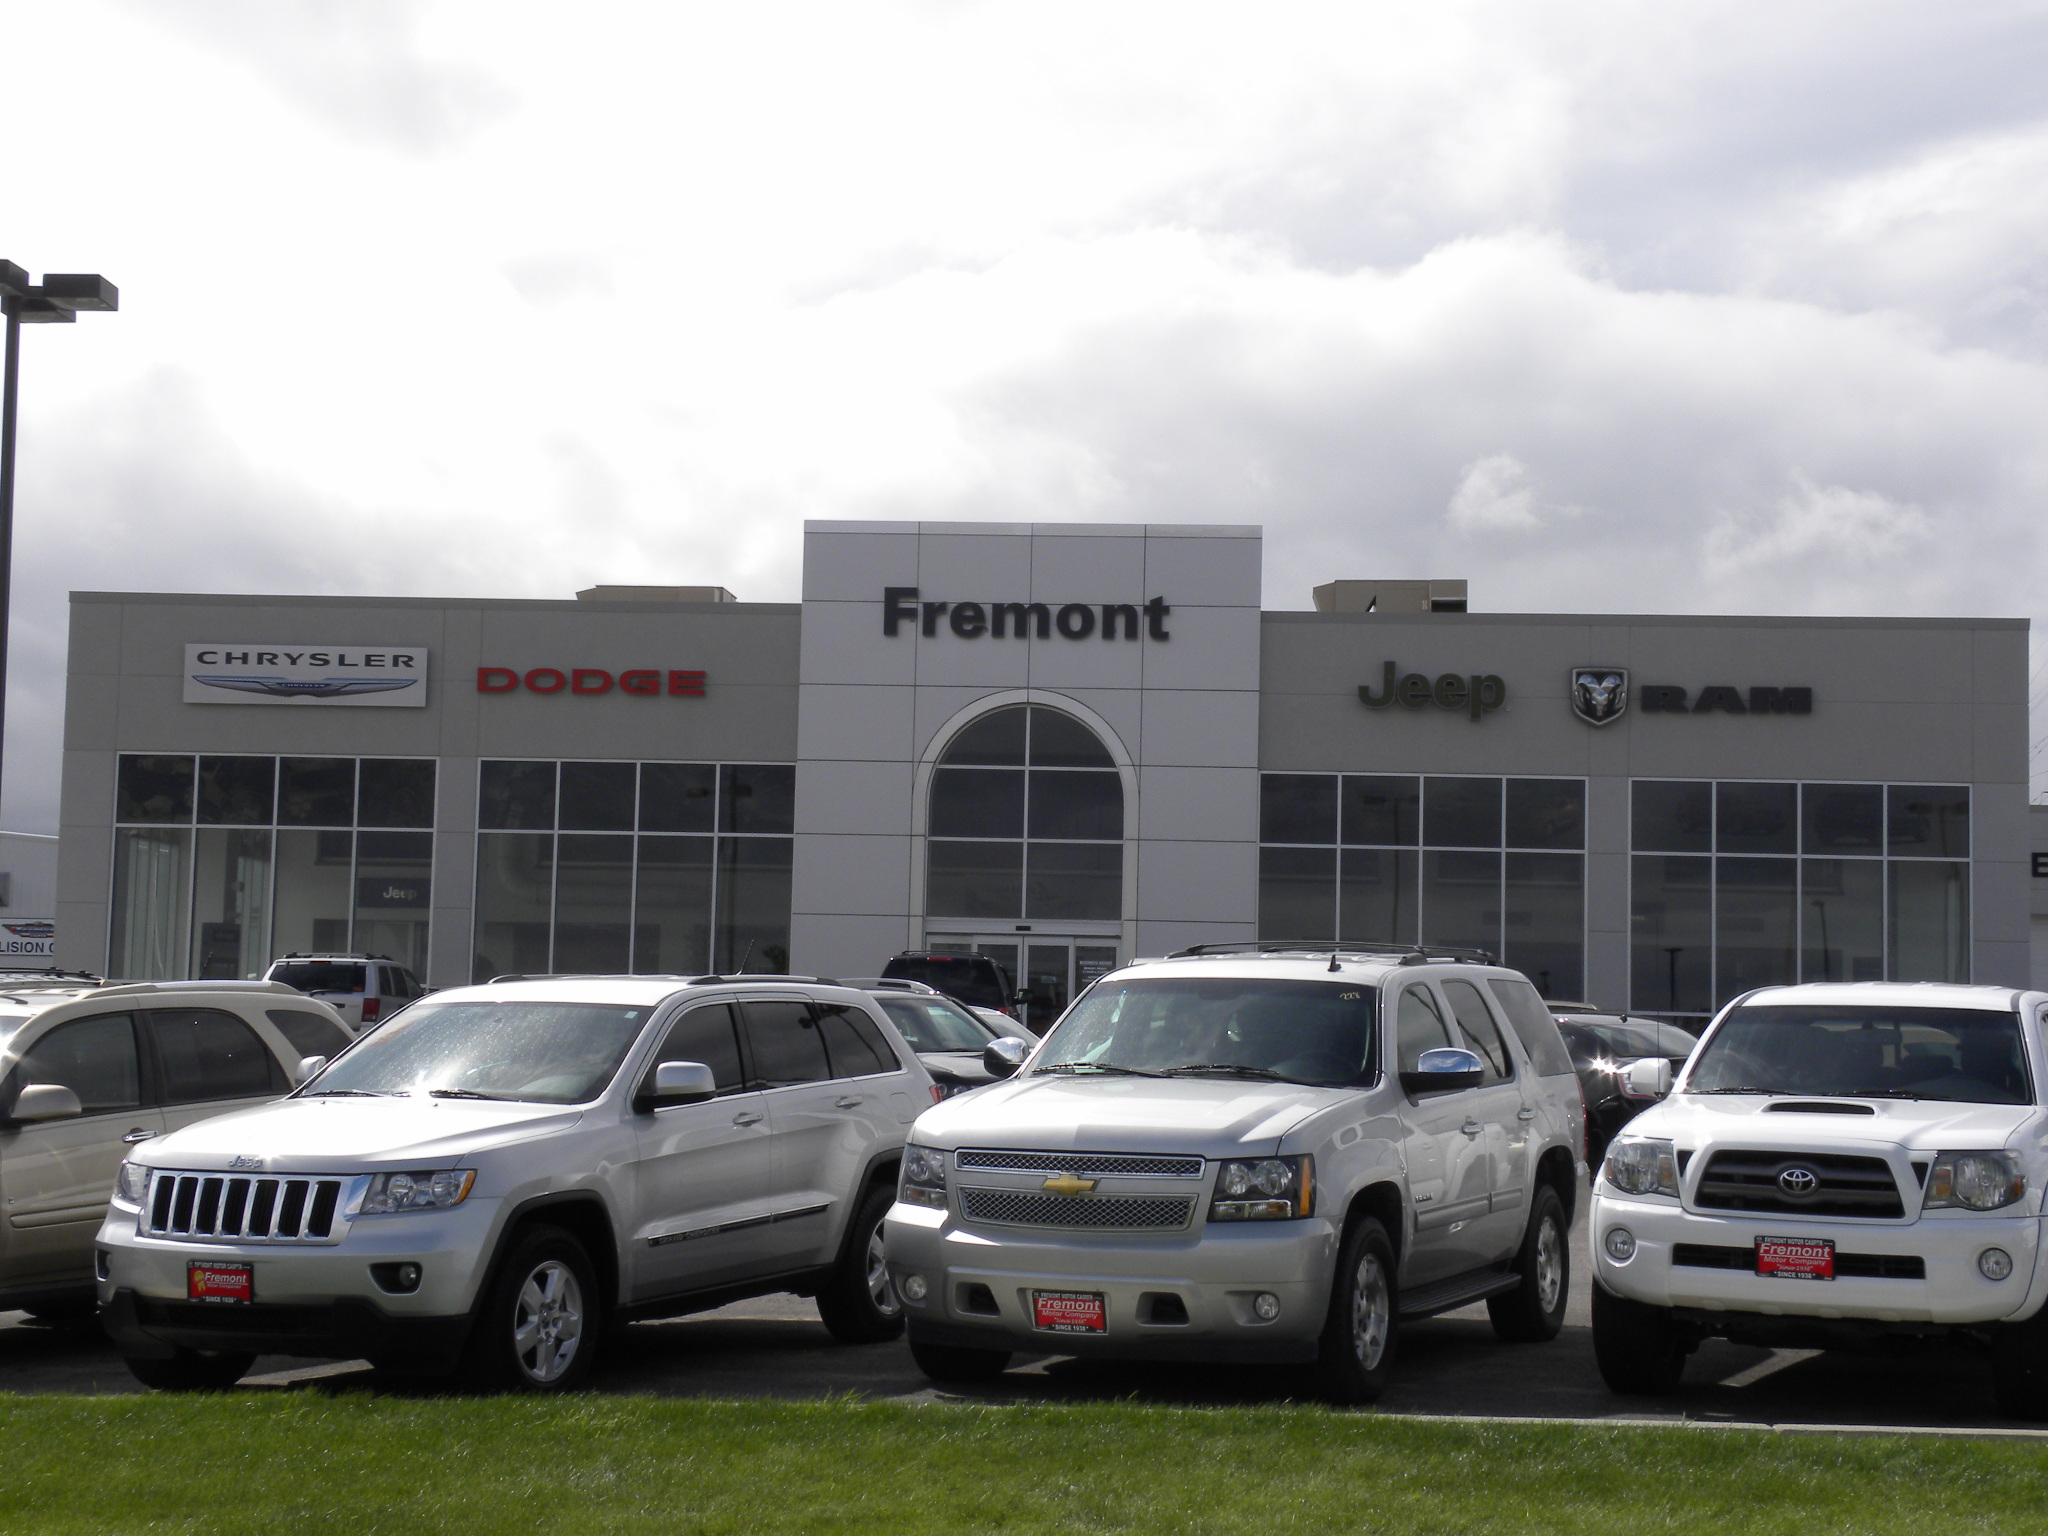 Fremont Motors Sheridan Wyoming Impremedia Net